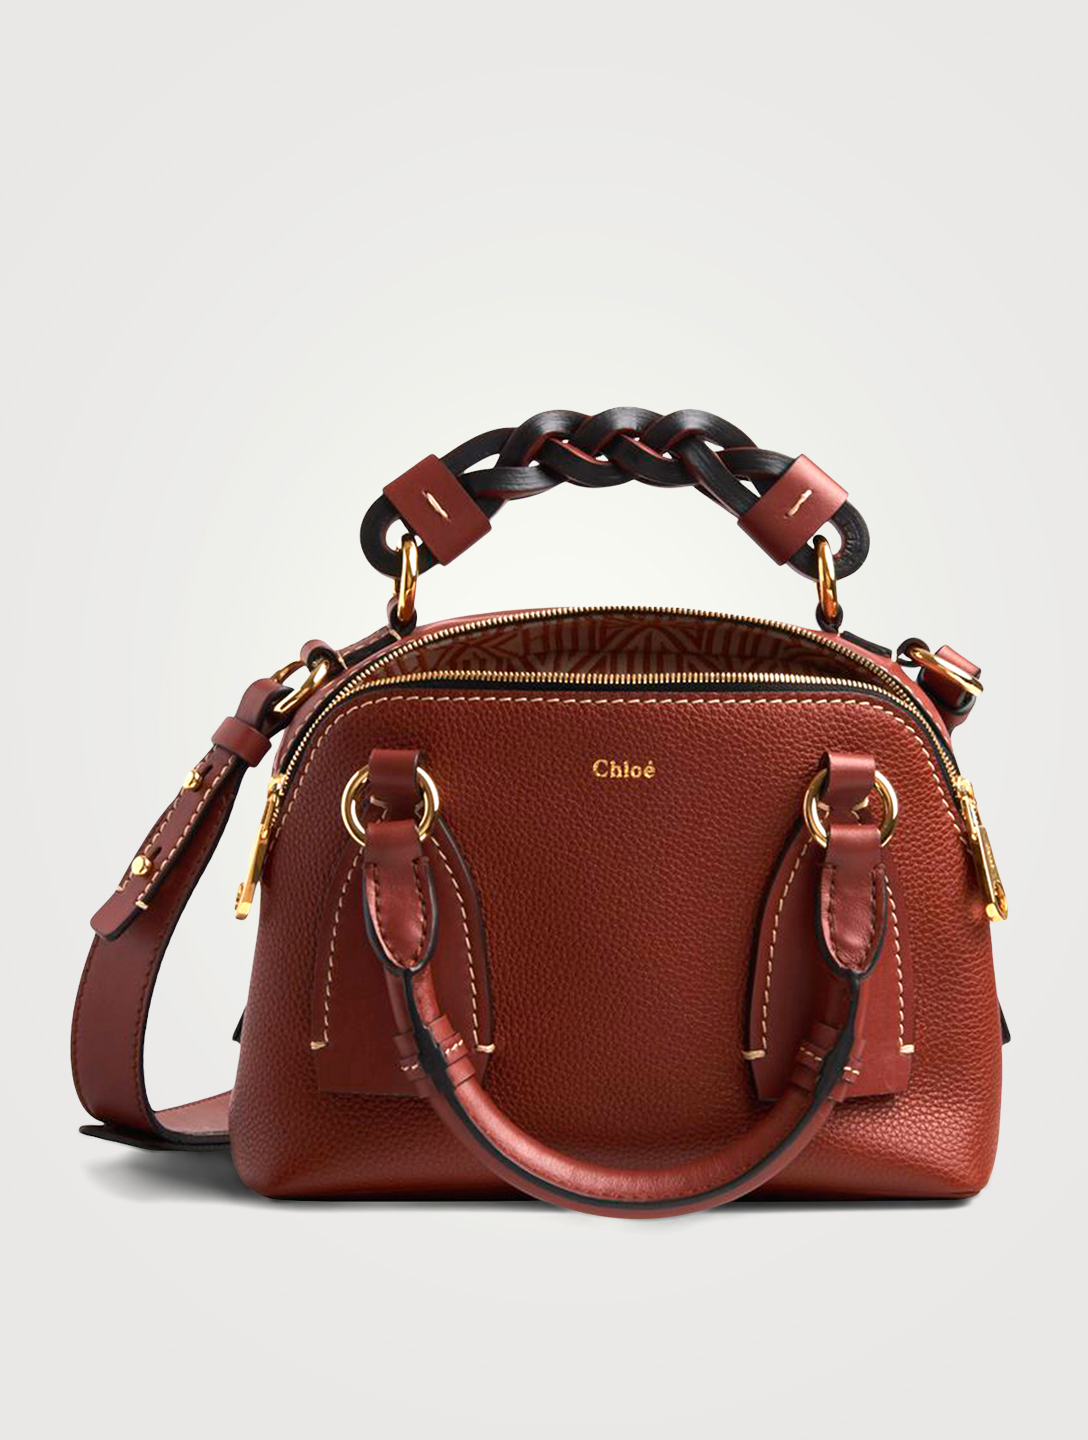 CHLOÉ Small Daria Leather Bag Women's Brown